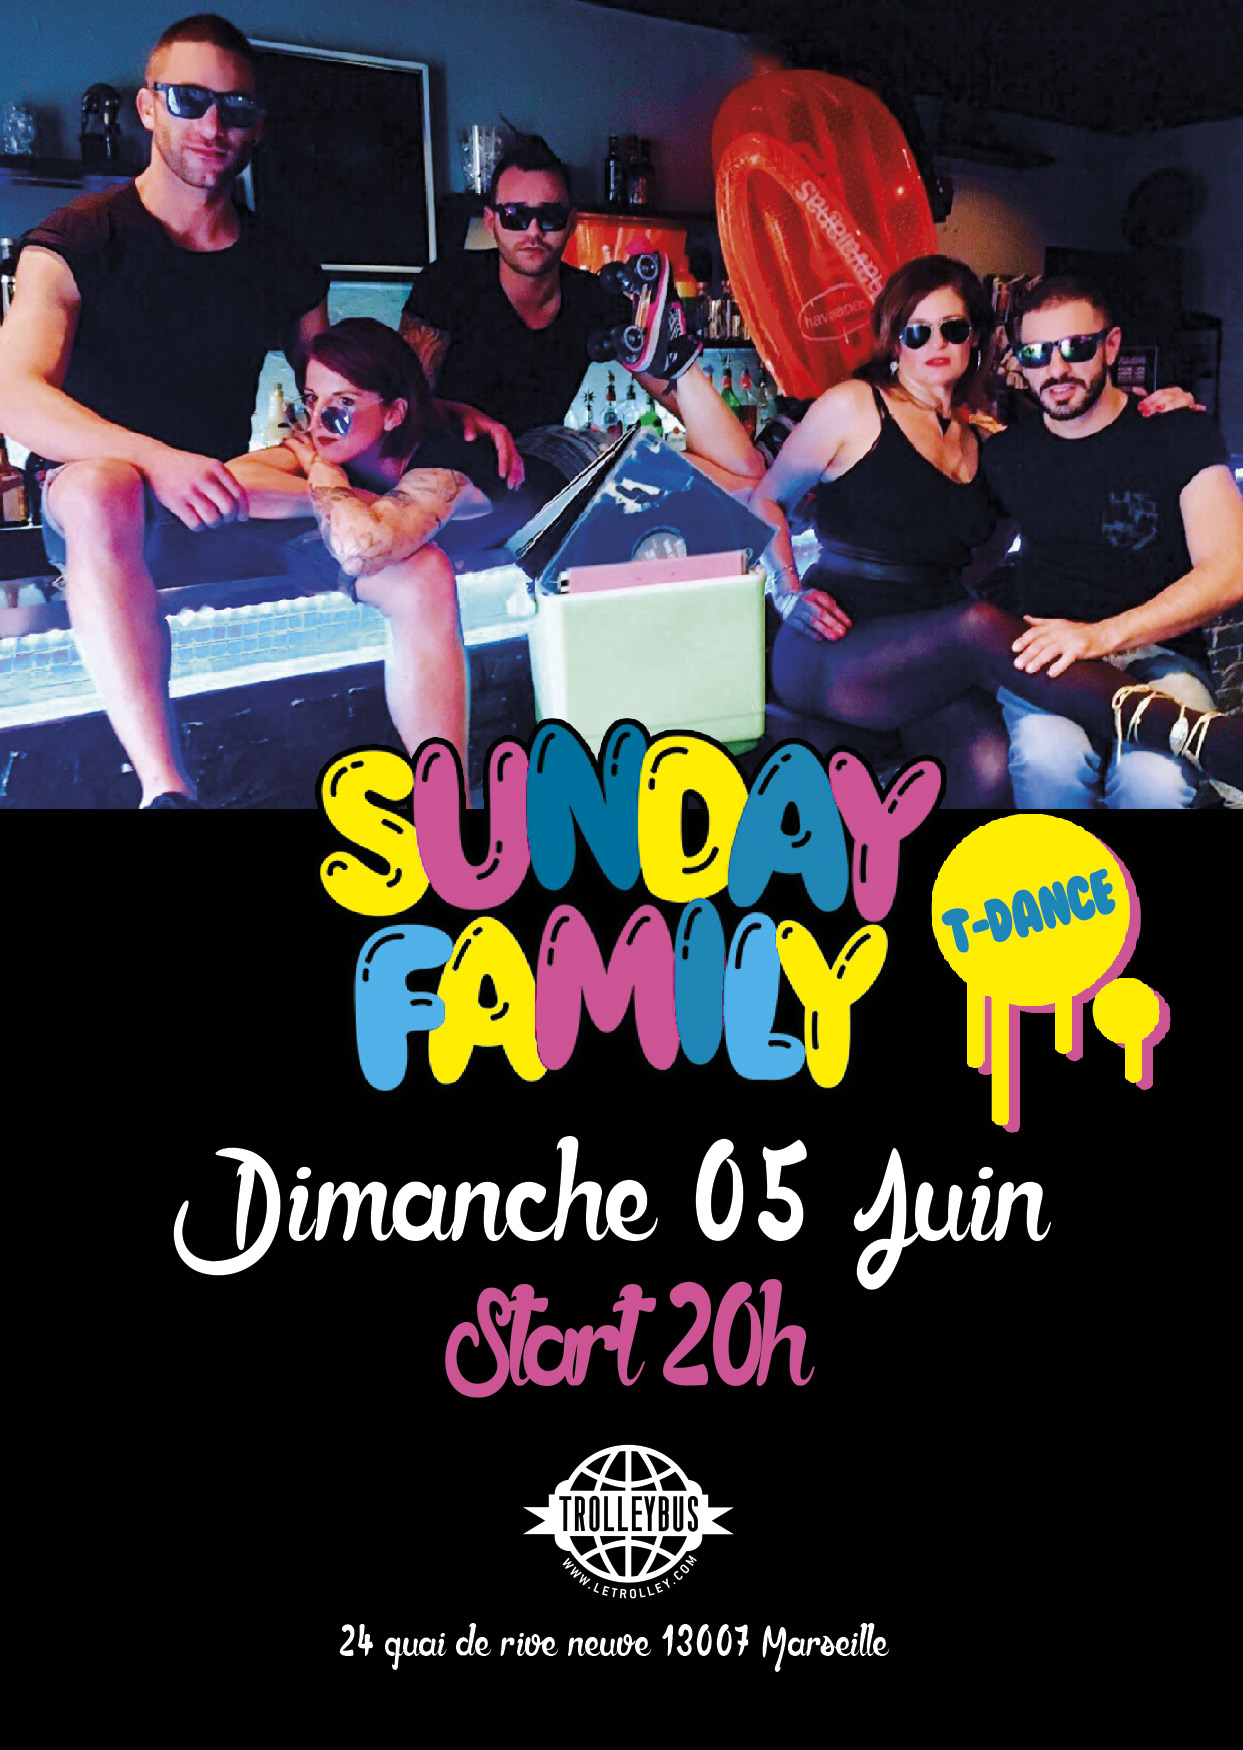 Sunday-Family, marseille, gay, club, dimanche